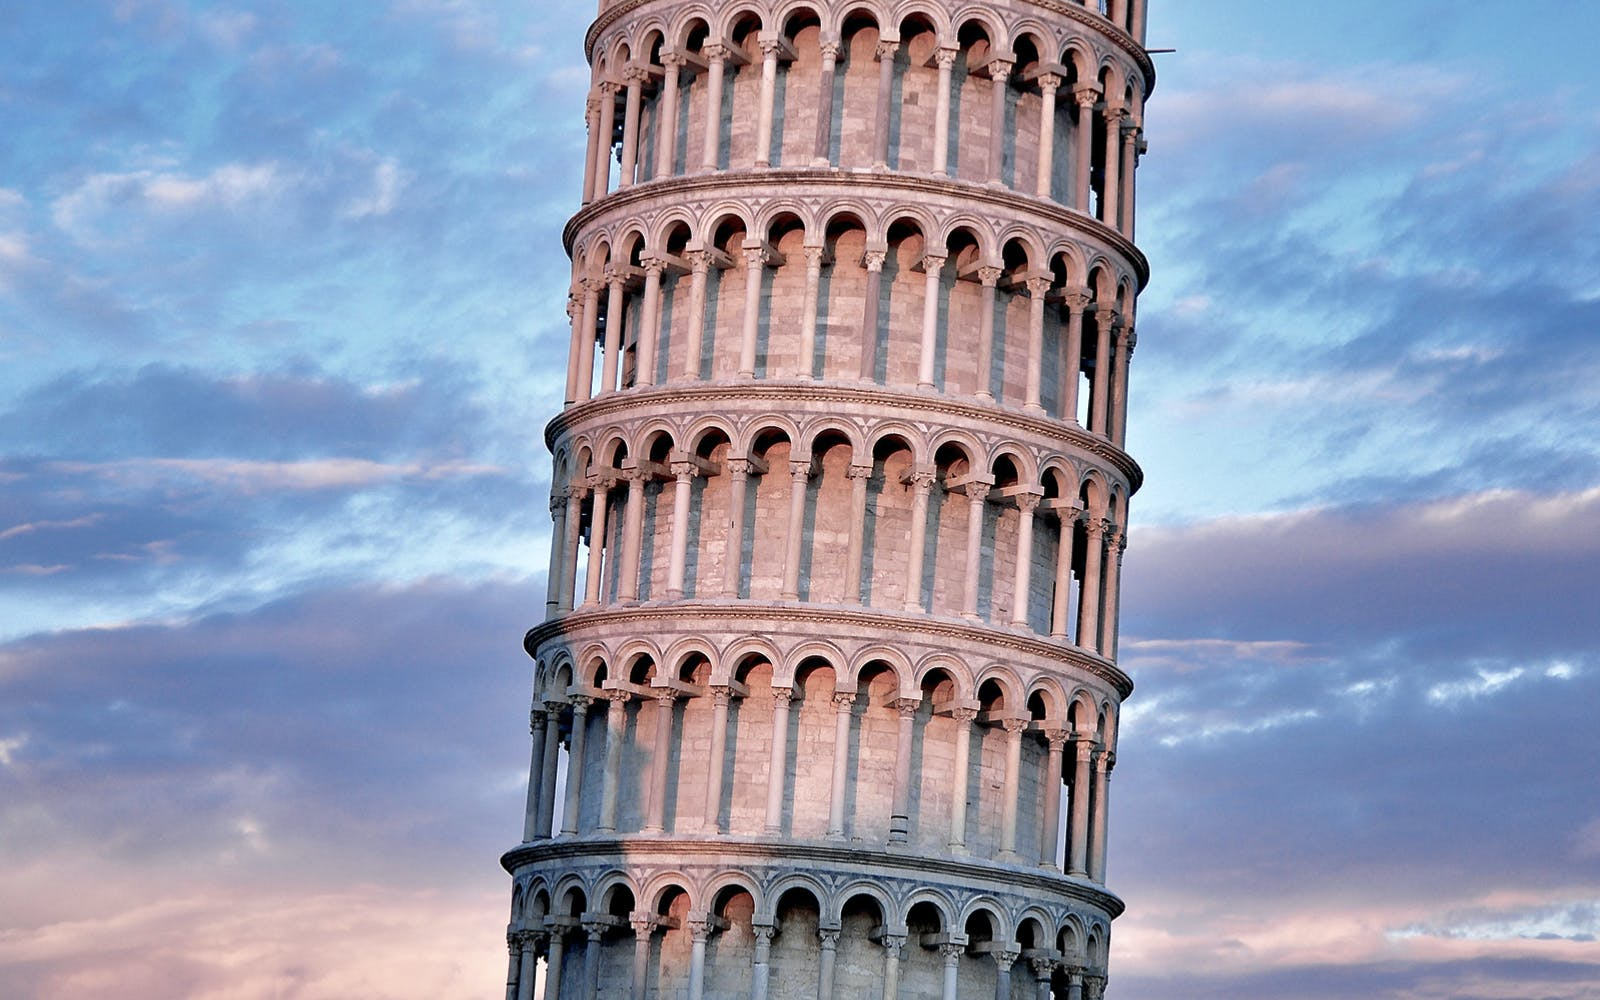 guided tour of pisa with skip the line access to the leaning tower -3